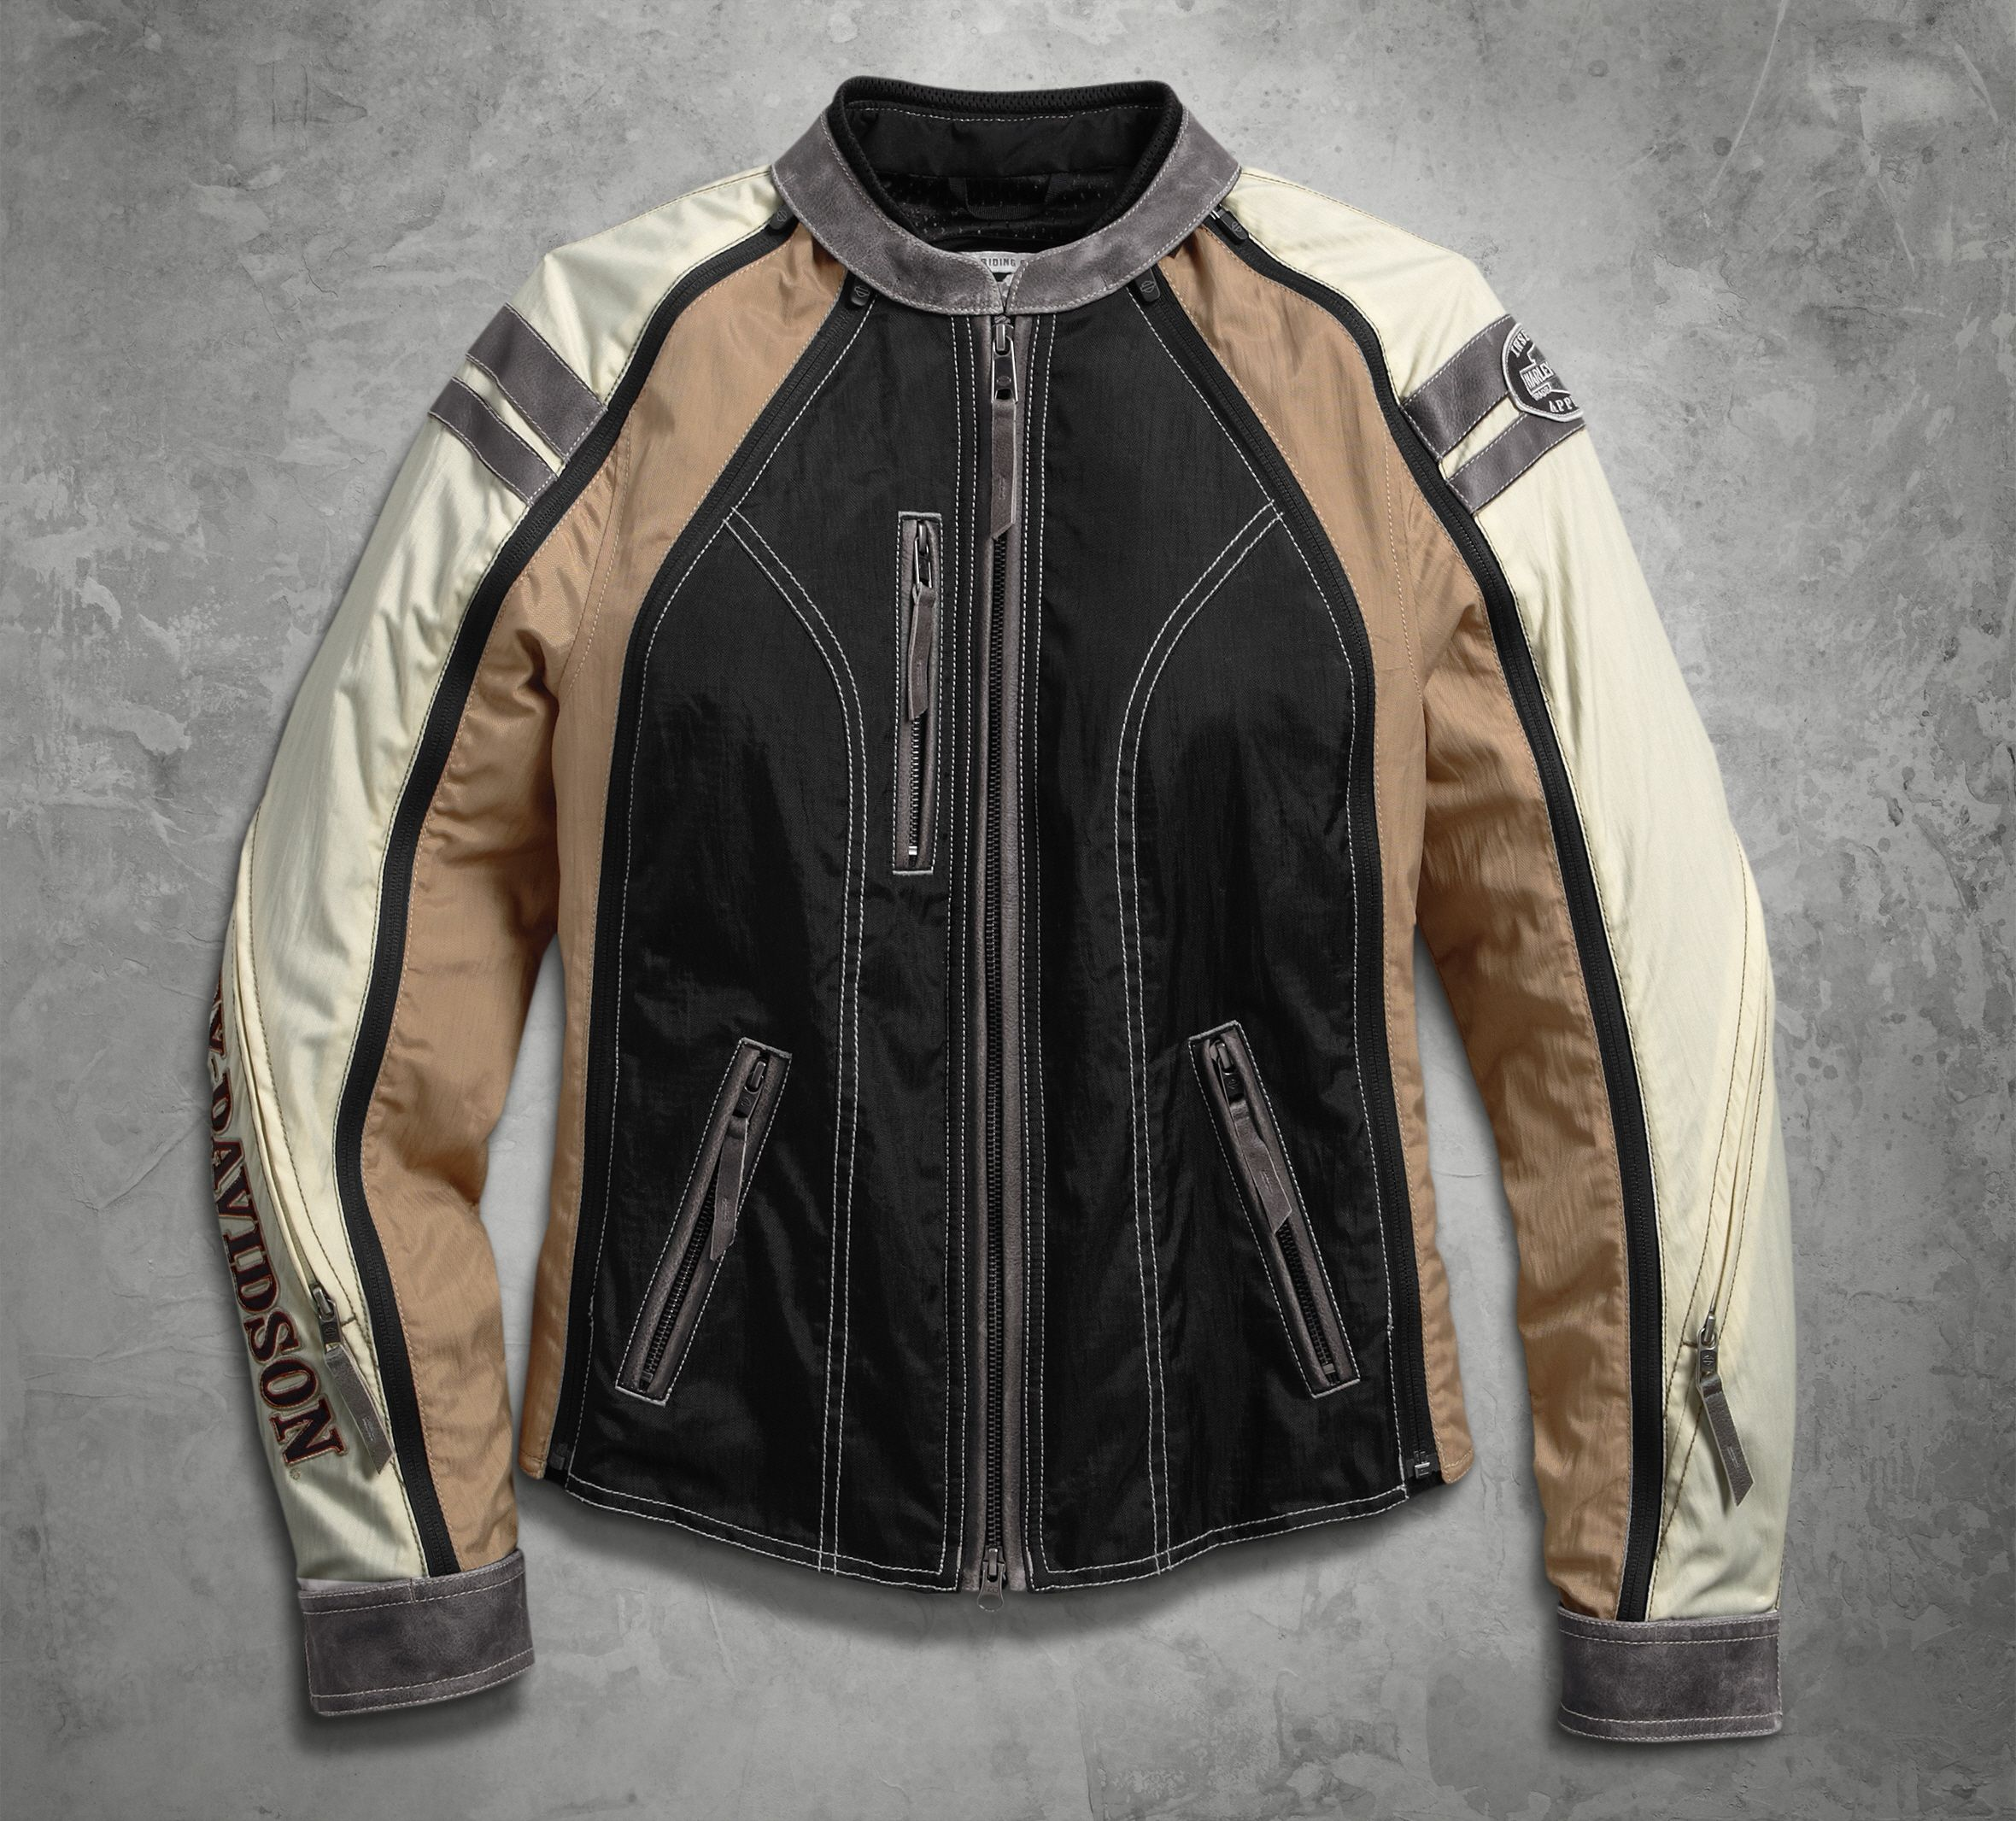 For Versatility It S Tough To Beat Our Switchback Jackets Harley Davidson Women S Pacer Sw Functional Jackets Harley Davidson Women